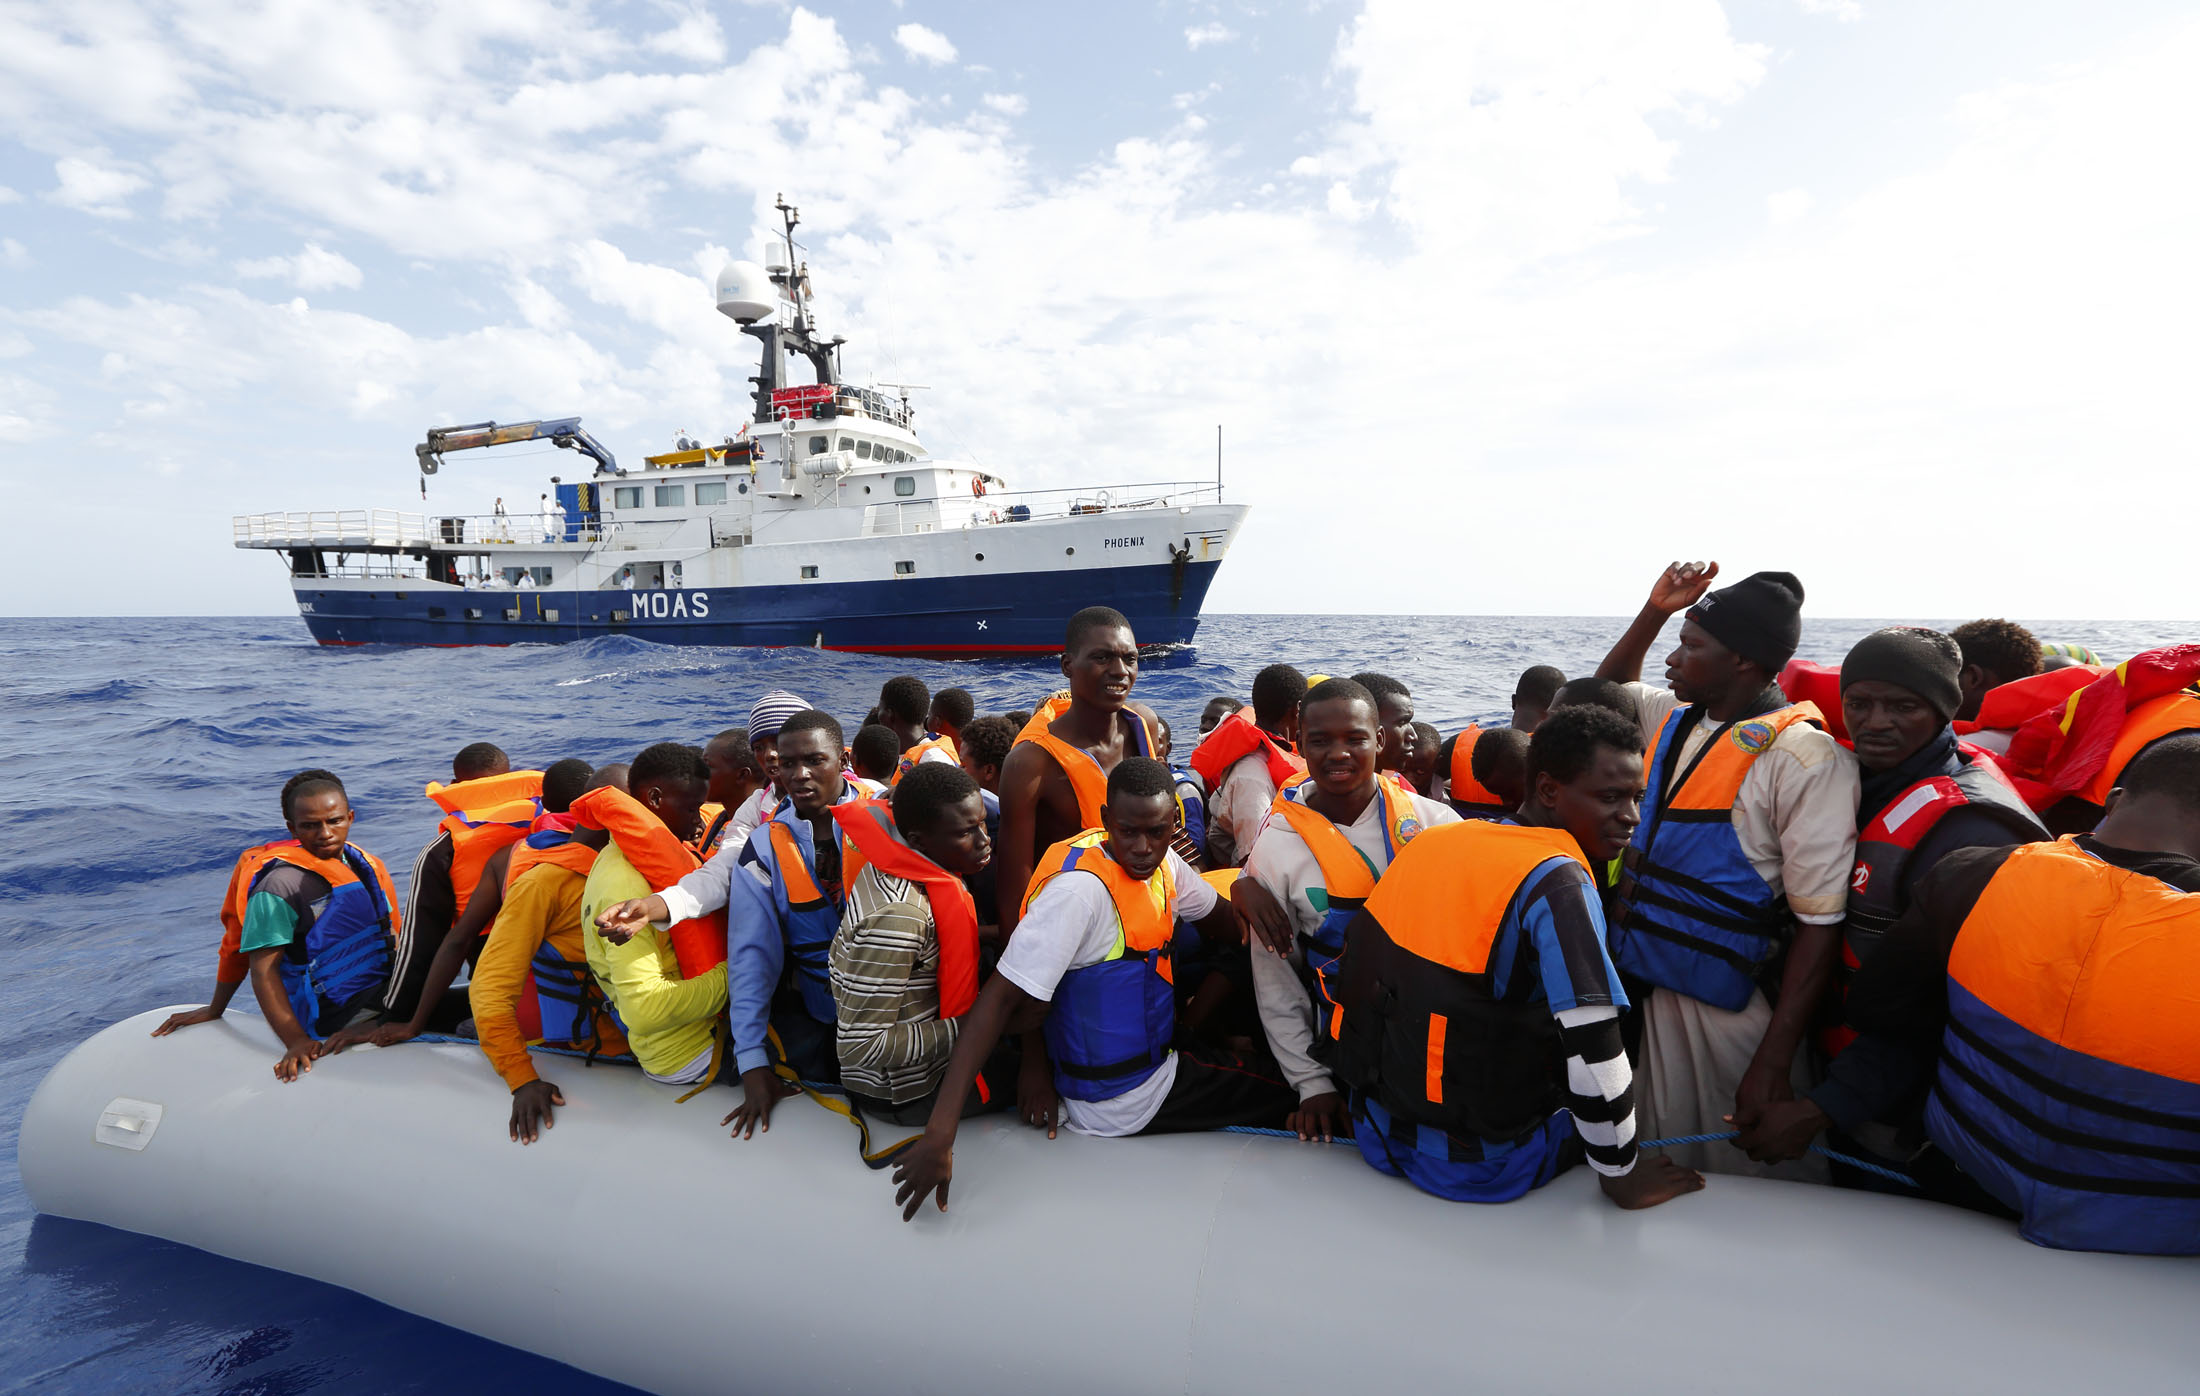 A ship run by the Migrant Offshore Aid Station rescues people attempting to enter Europe by boat on the Mediterranean Sea in 2014